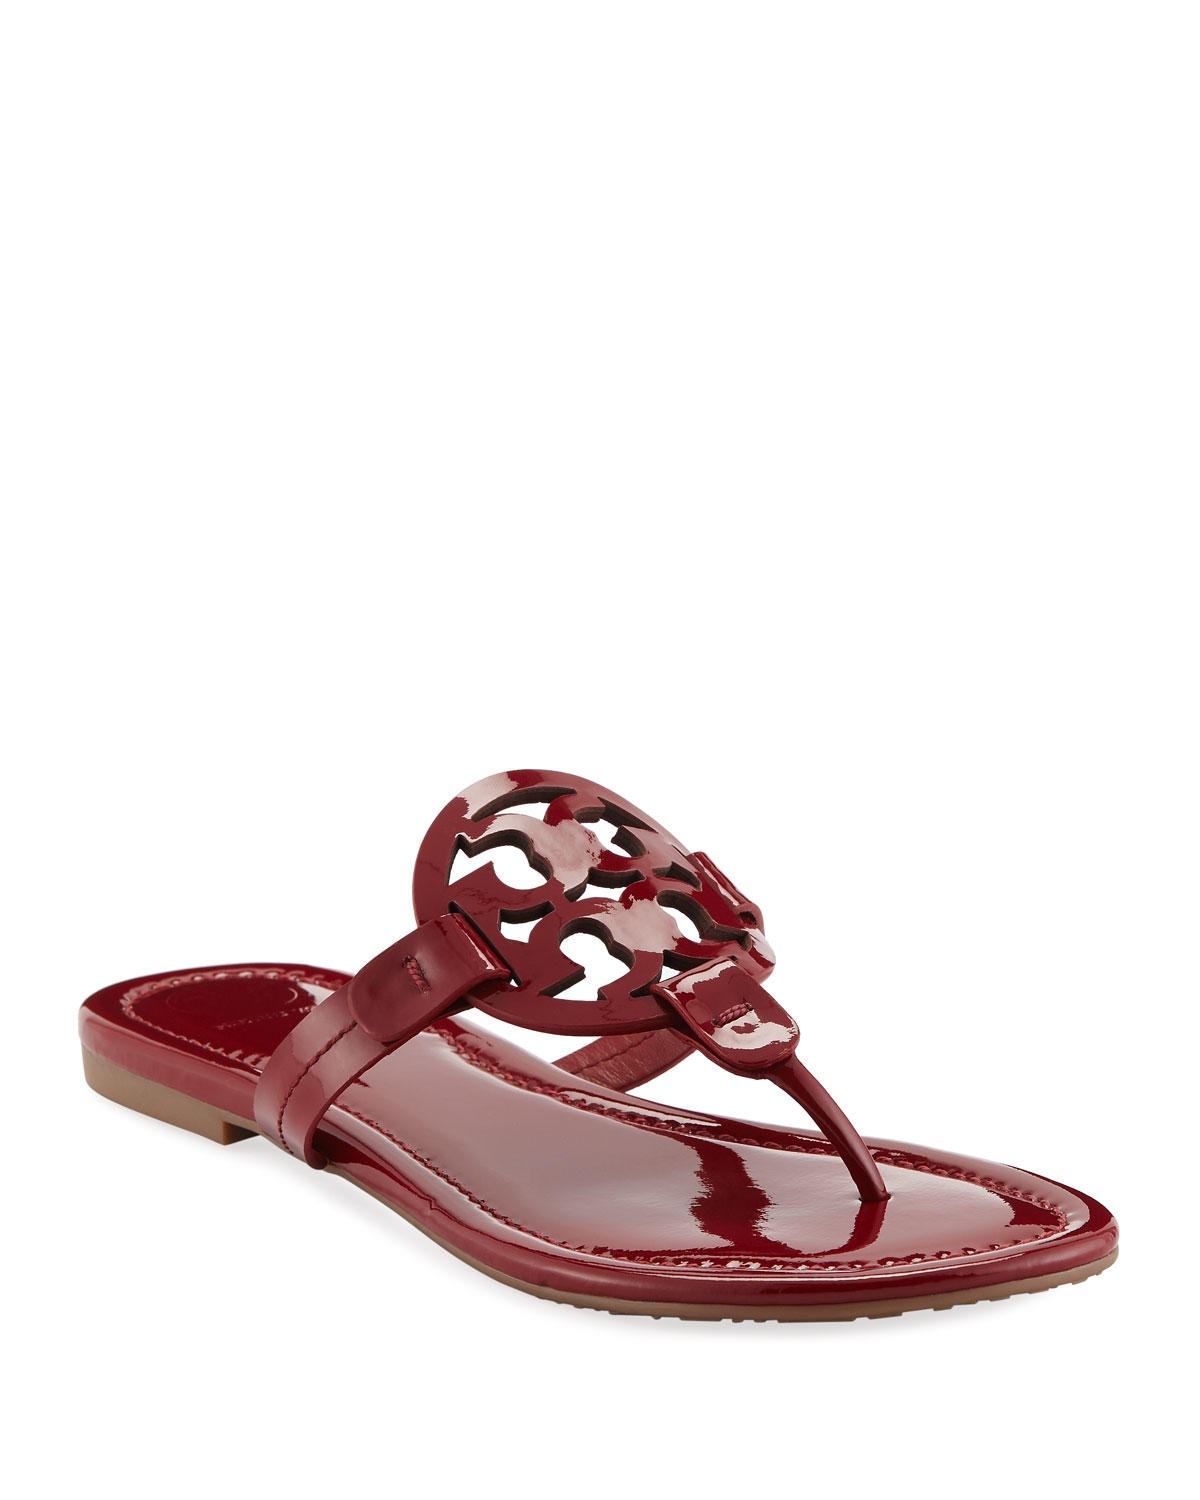 299638ee727d Tory Burch Miller Medallion Patent Leather Flat Thong Sandals ...